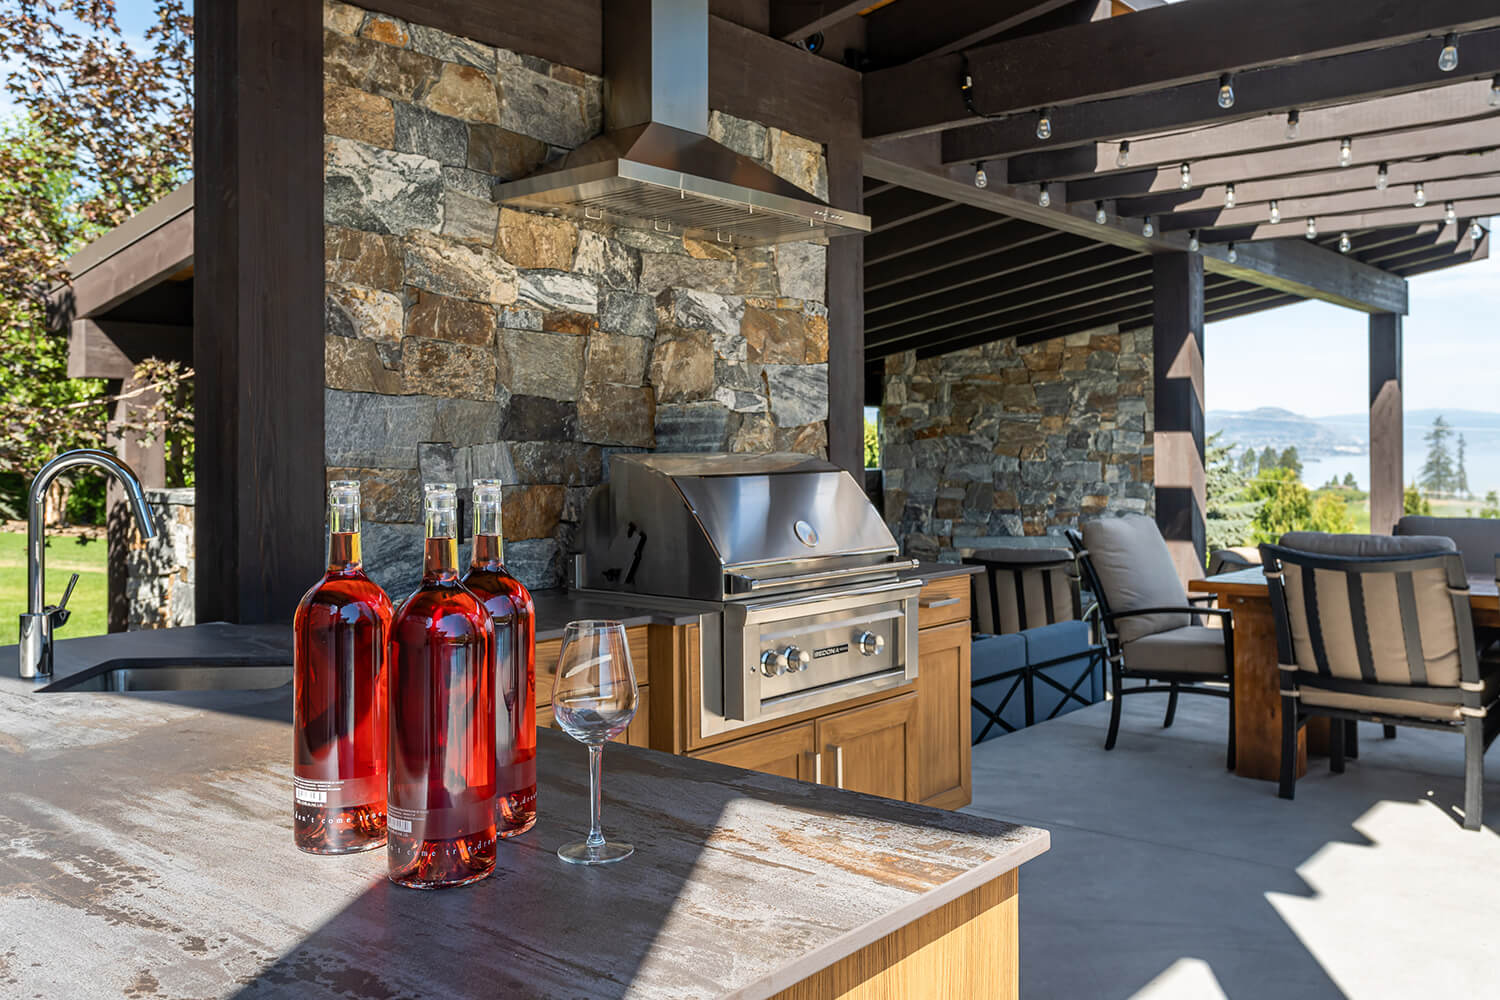 Outdoor Kitchens Vancouver - Benefits of Barbecuing - Genesis Kitchen